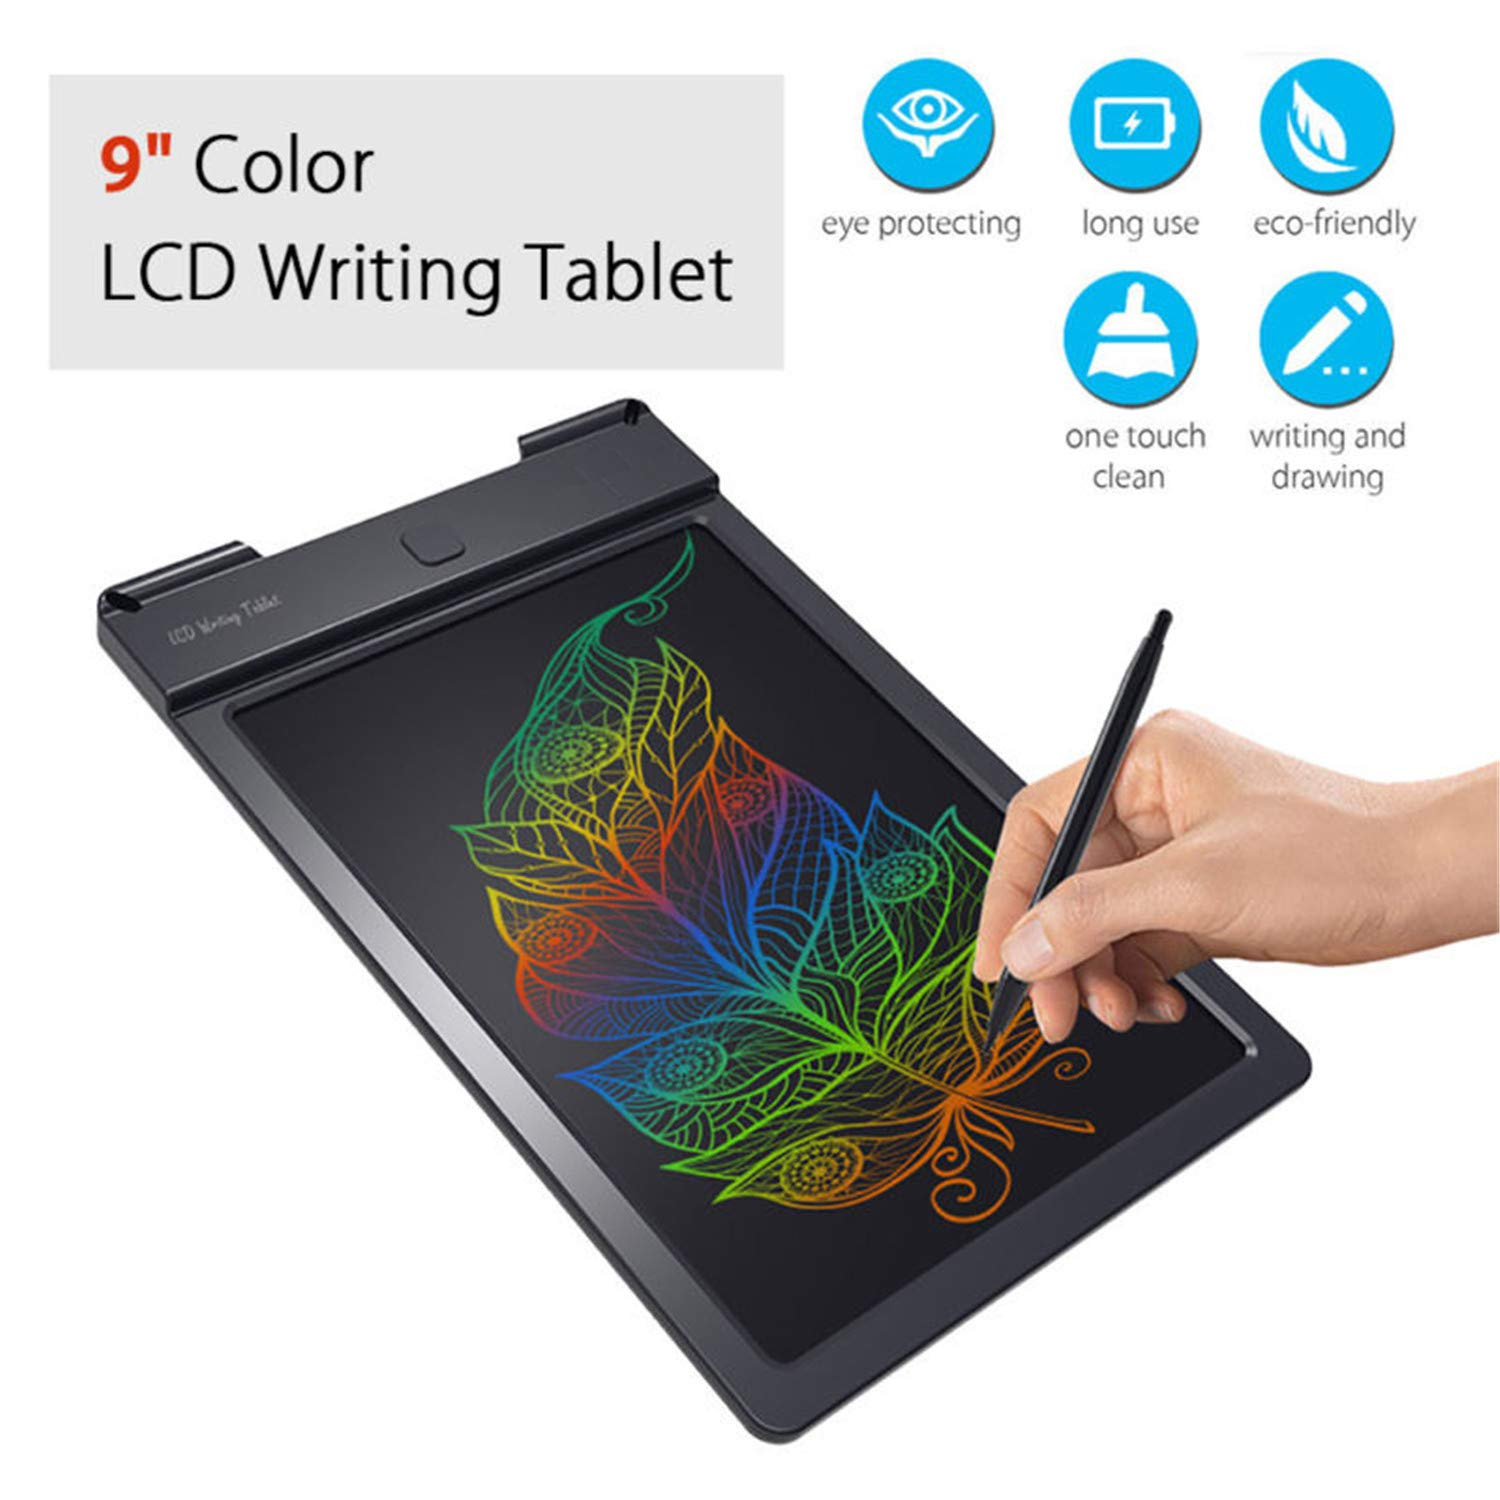 BABIFIS 9 Inch Color LCD Writing Tablet Handwriting Pads Darwing Board Rewritable for Kids Gift